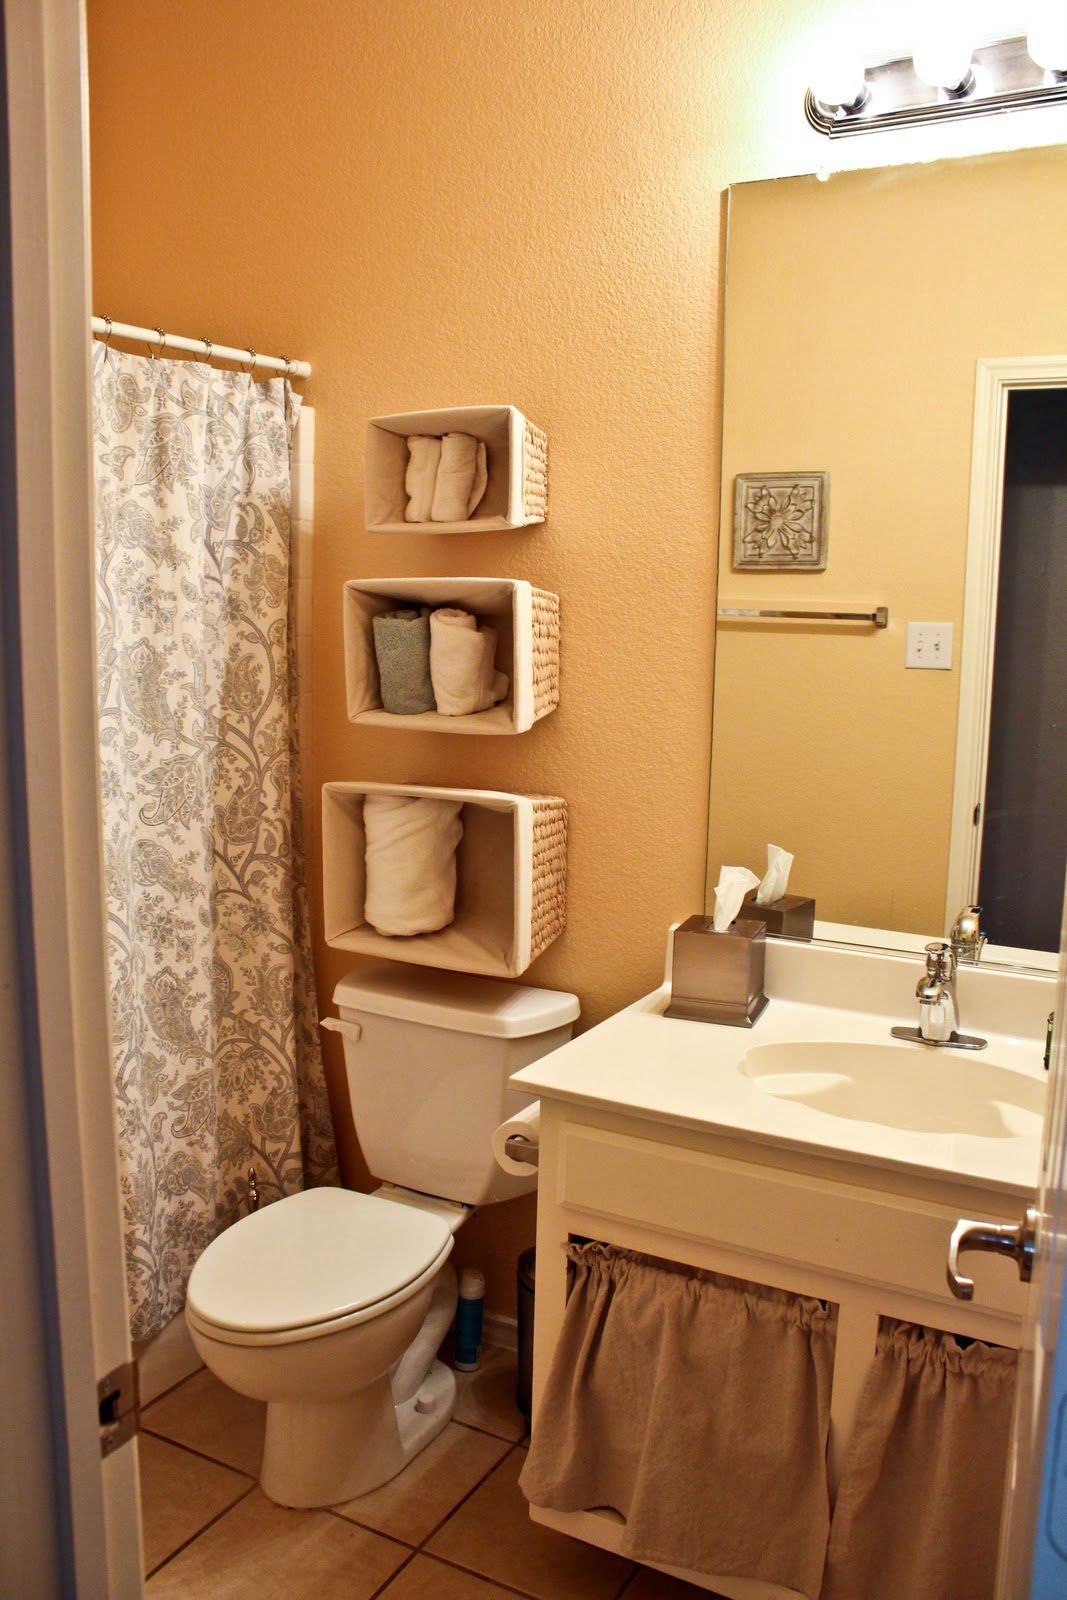 Bathroom storage for towels - Wall Mounted Storage Of Bathroom Storage For Towel